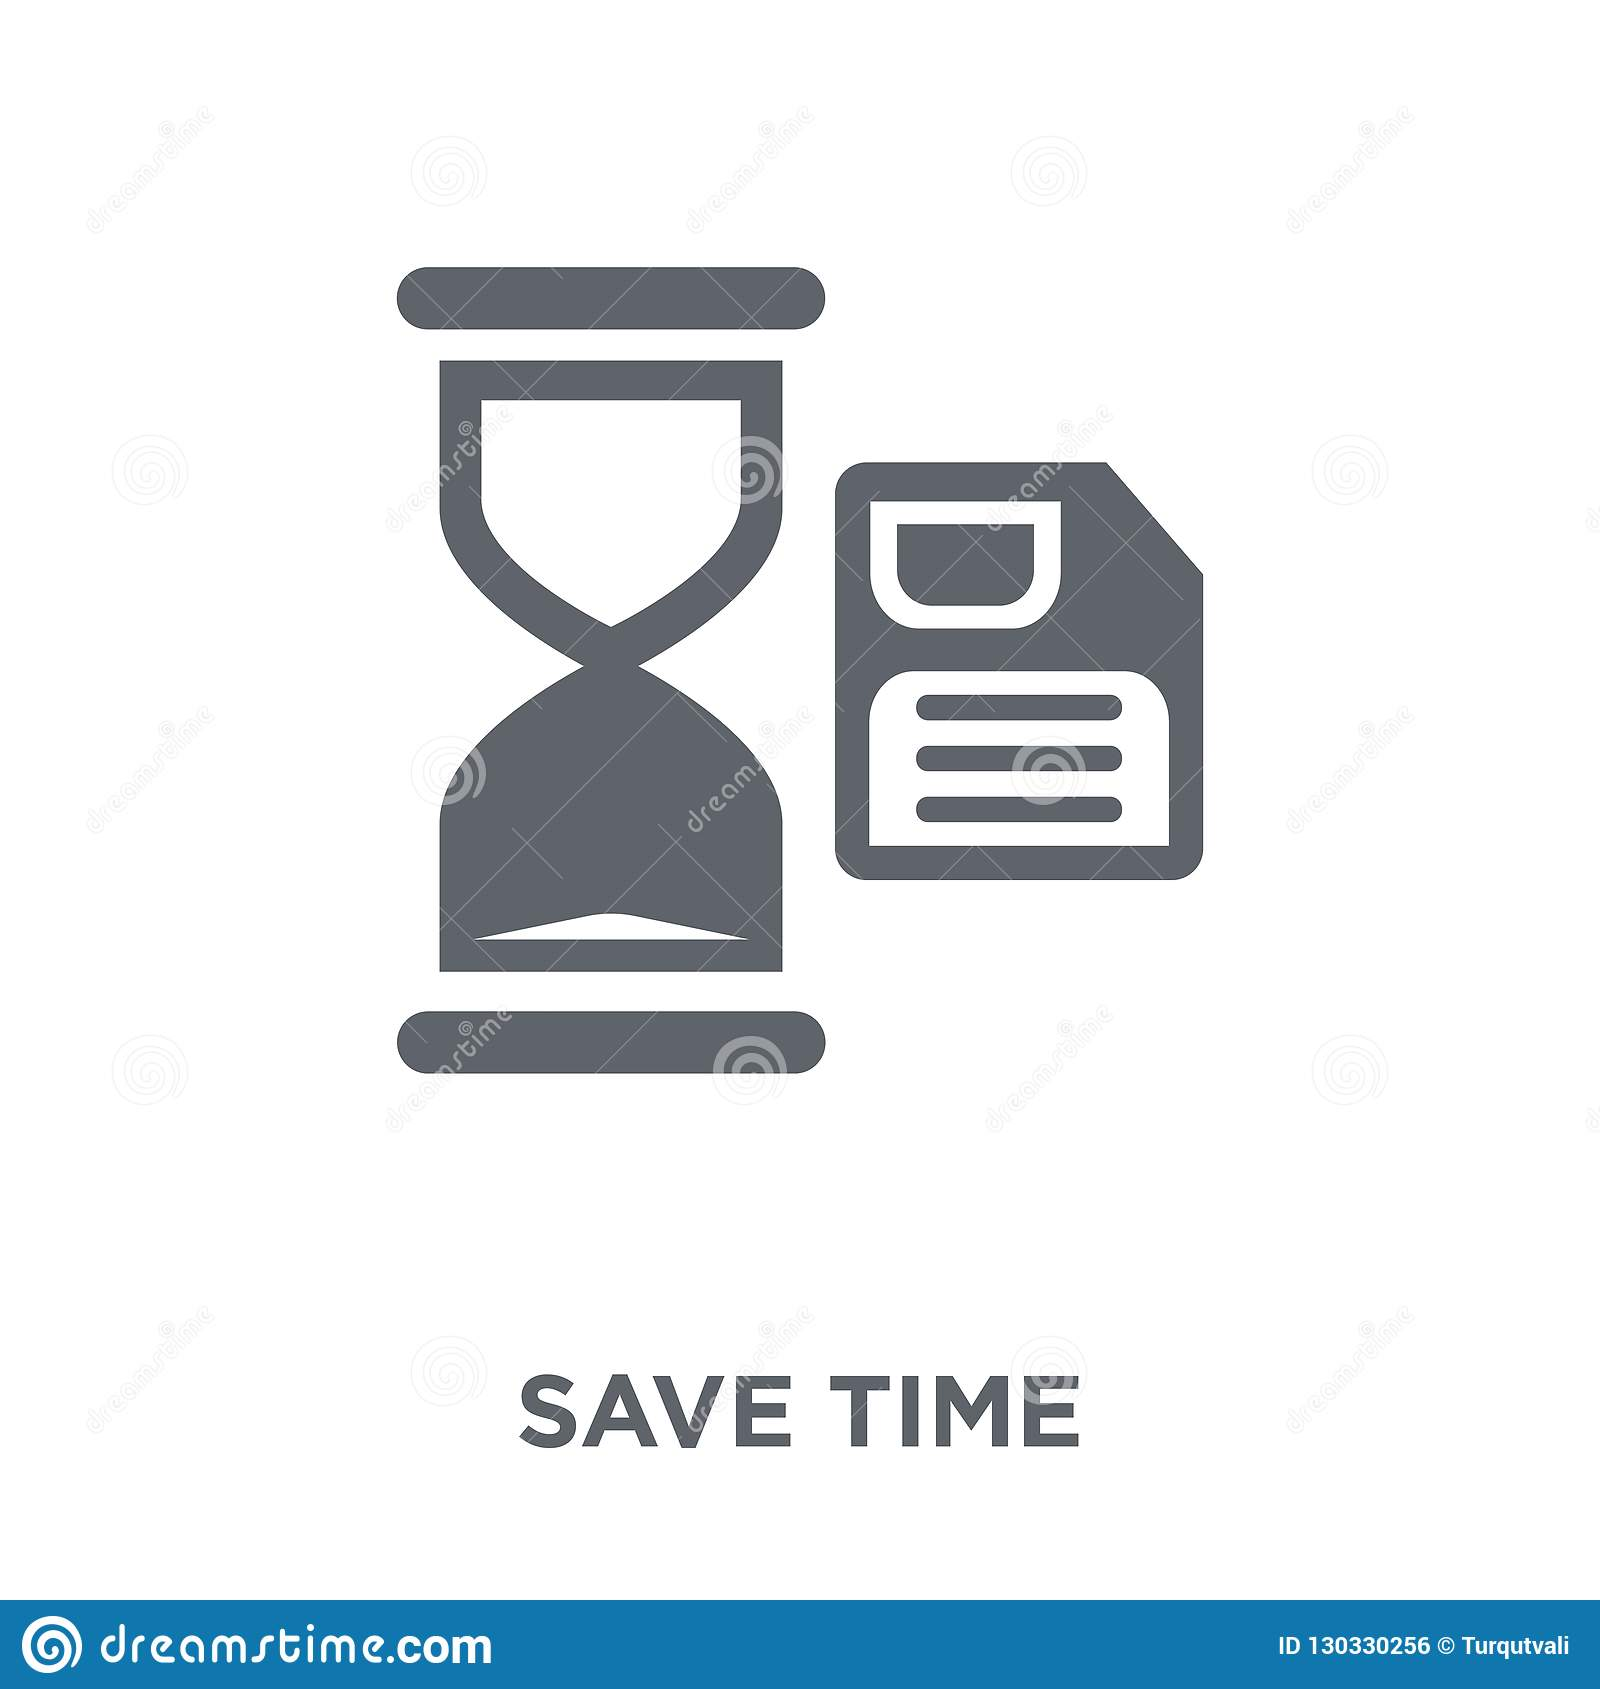 Save time icon from Time managemnet collection.